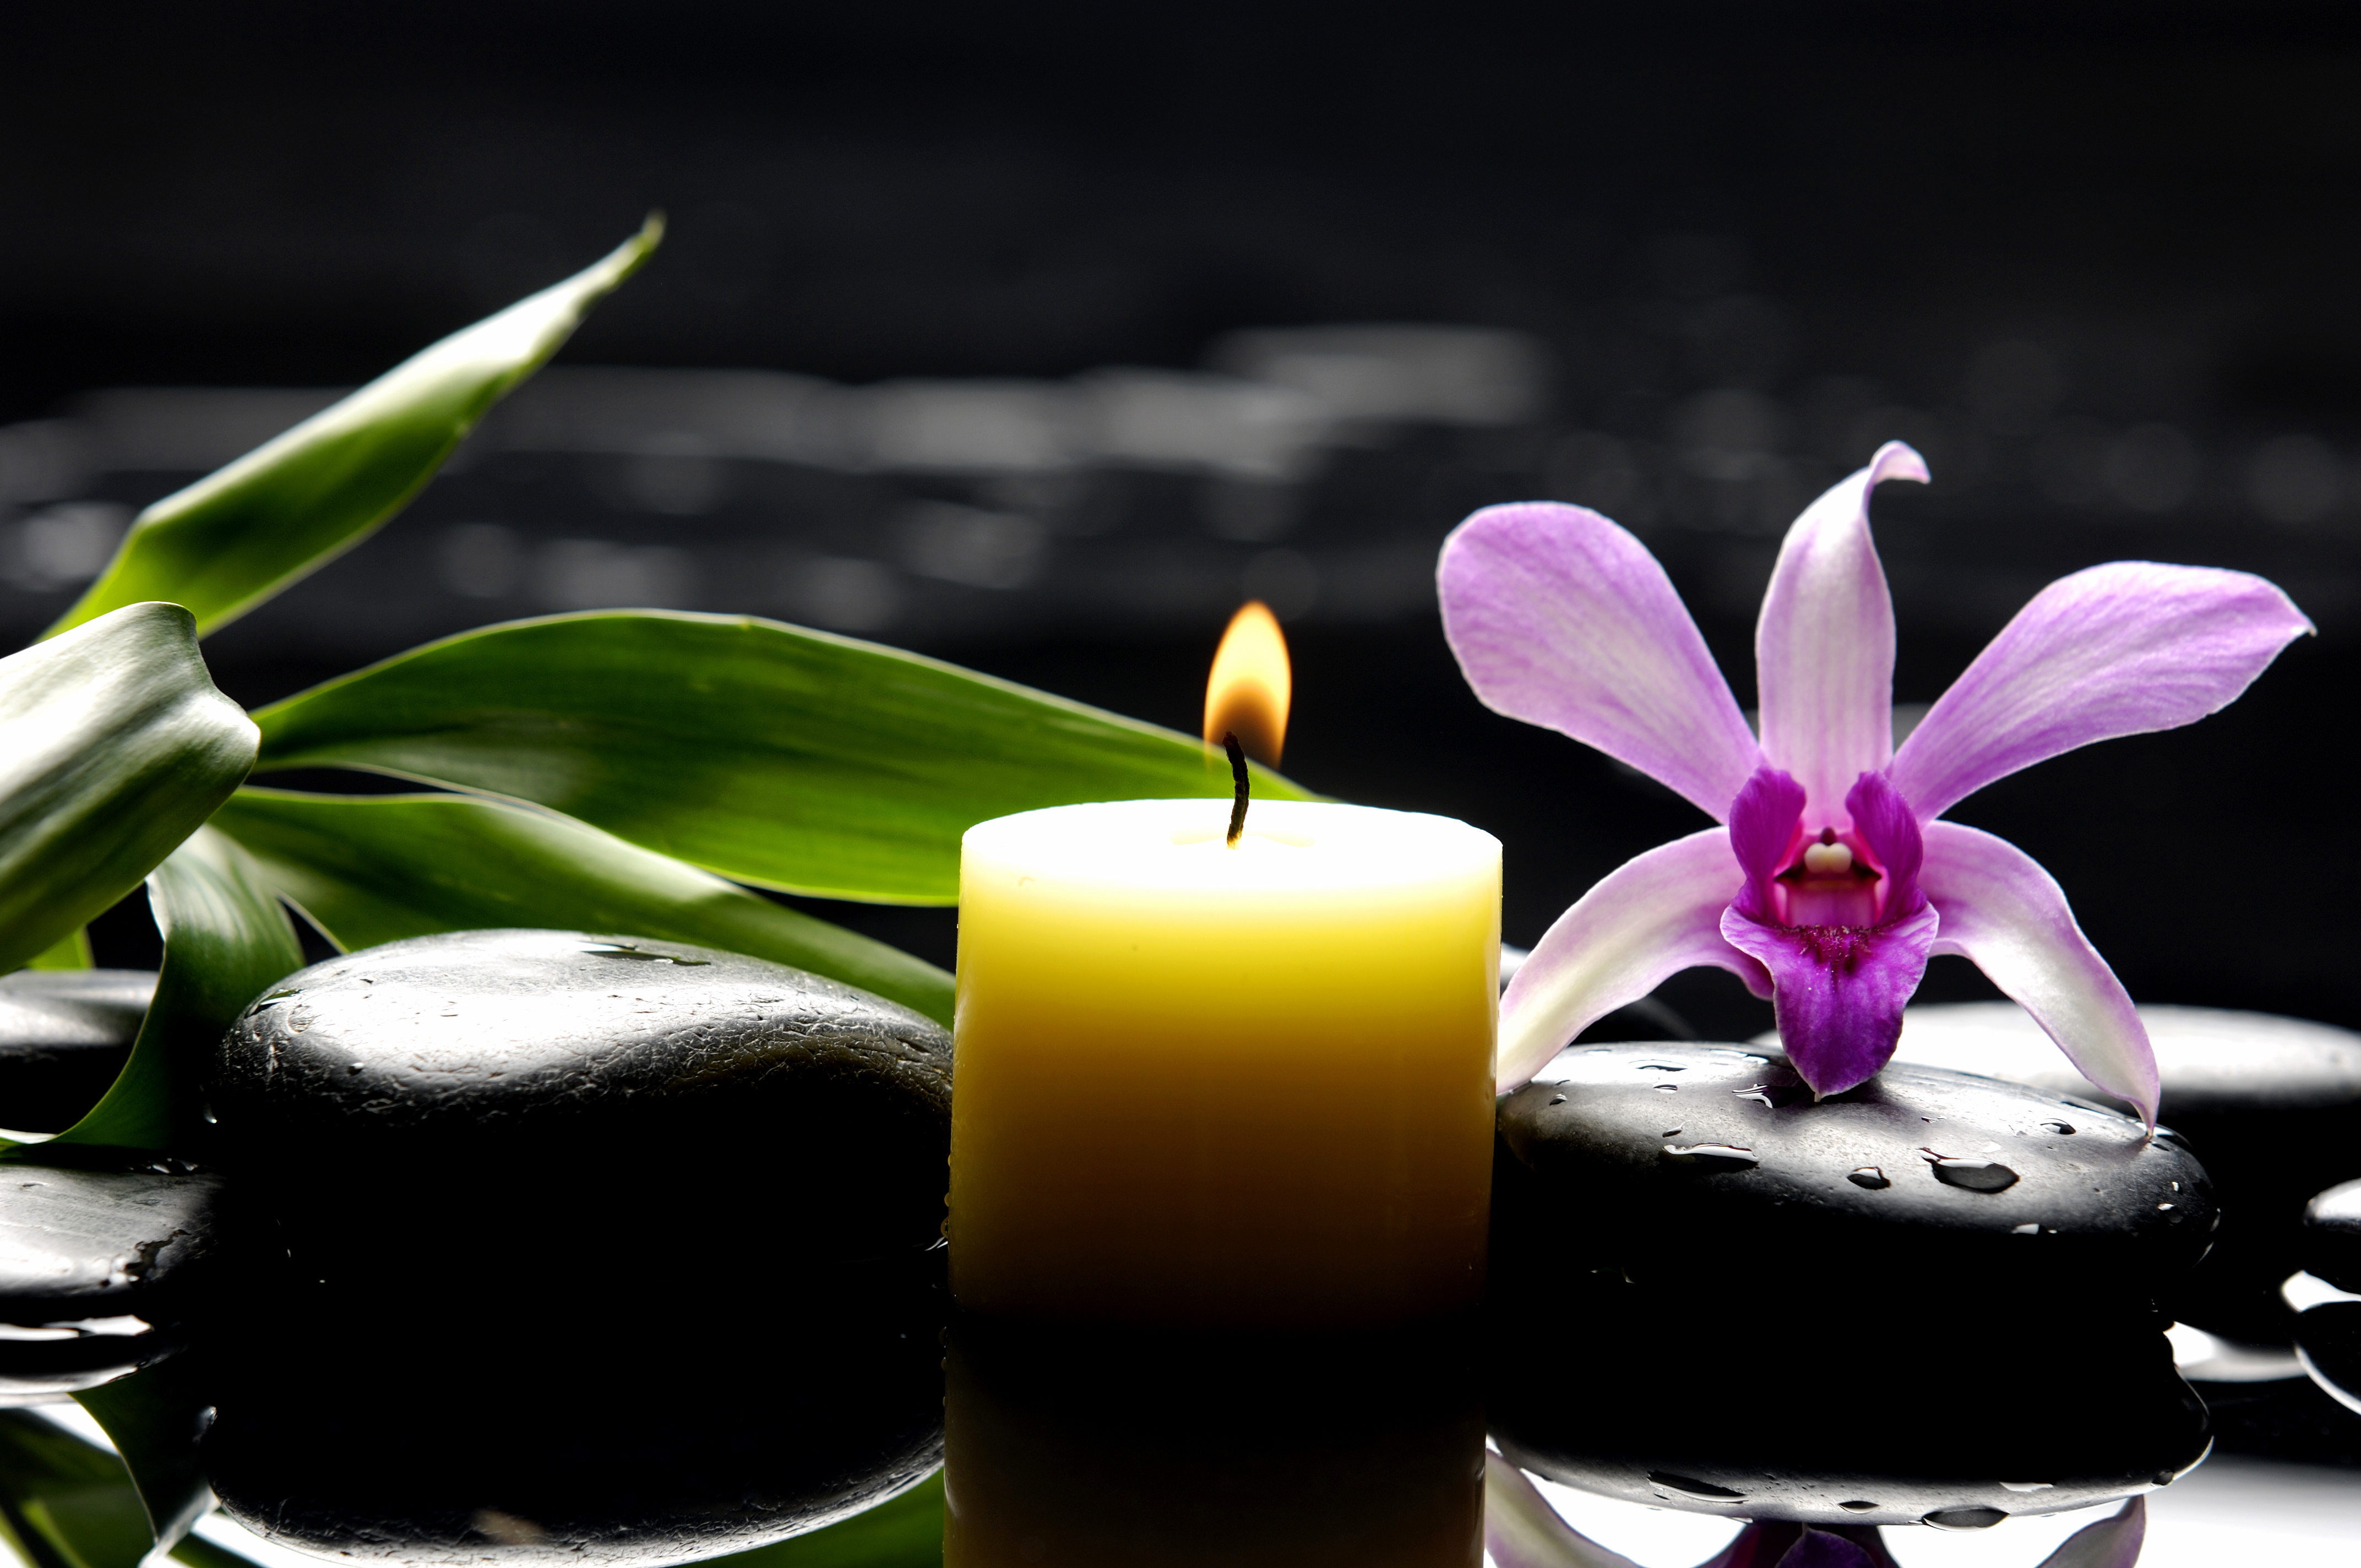 Black rocks, lit candle, and purple orchid on water